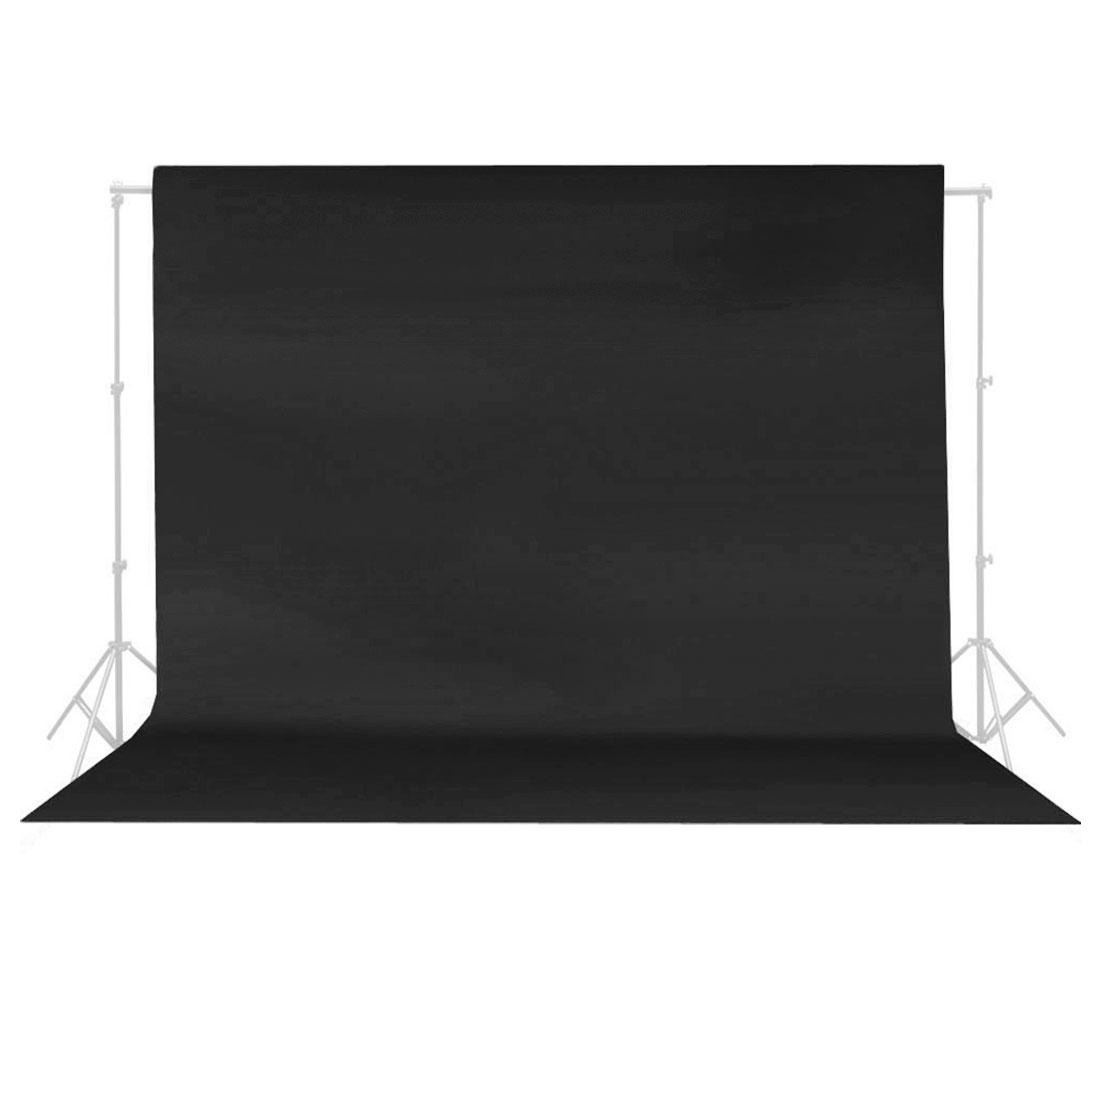 10Ftx10Ft Black Non-woven Fabric Photography Backdrop Background Cloth